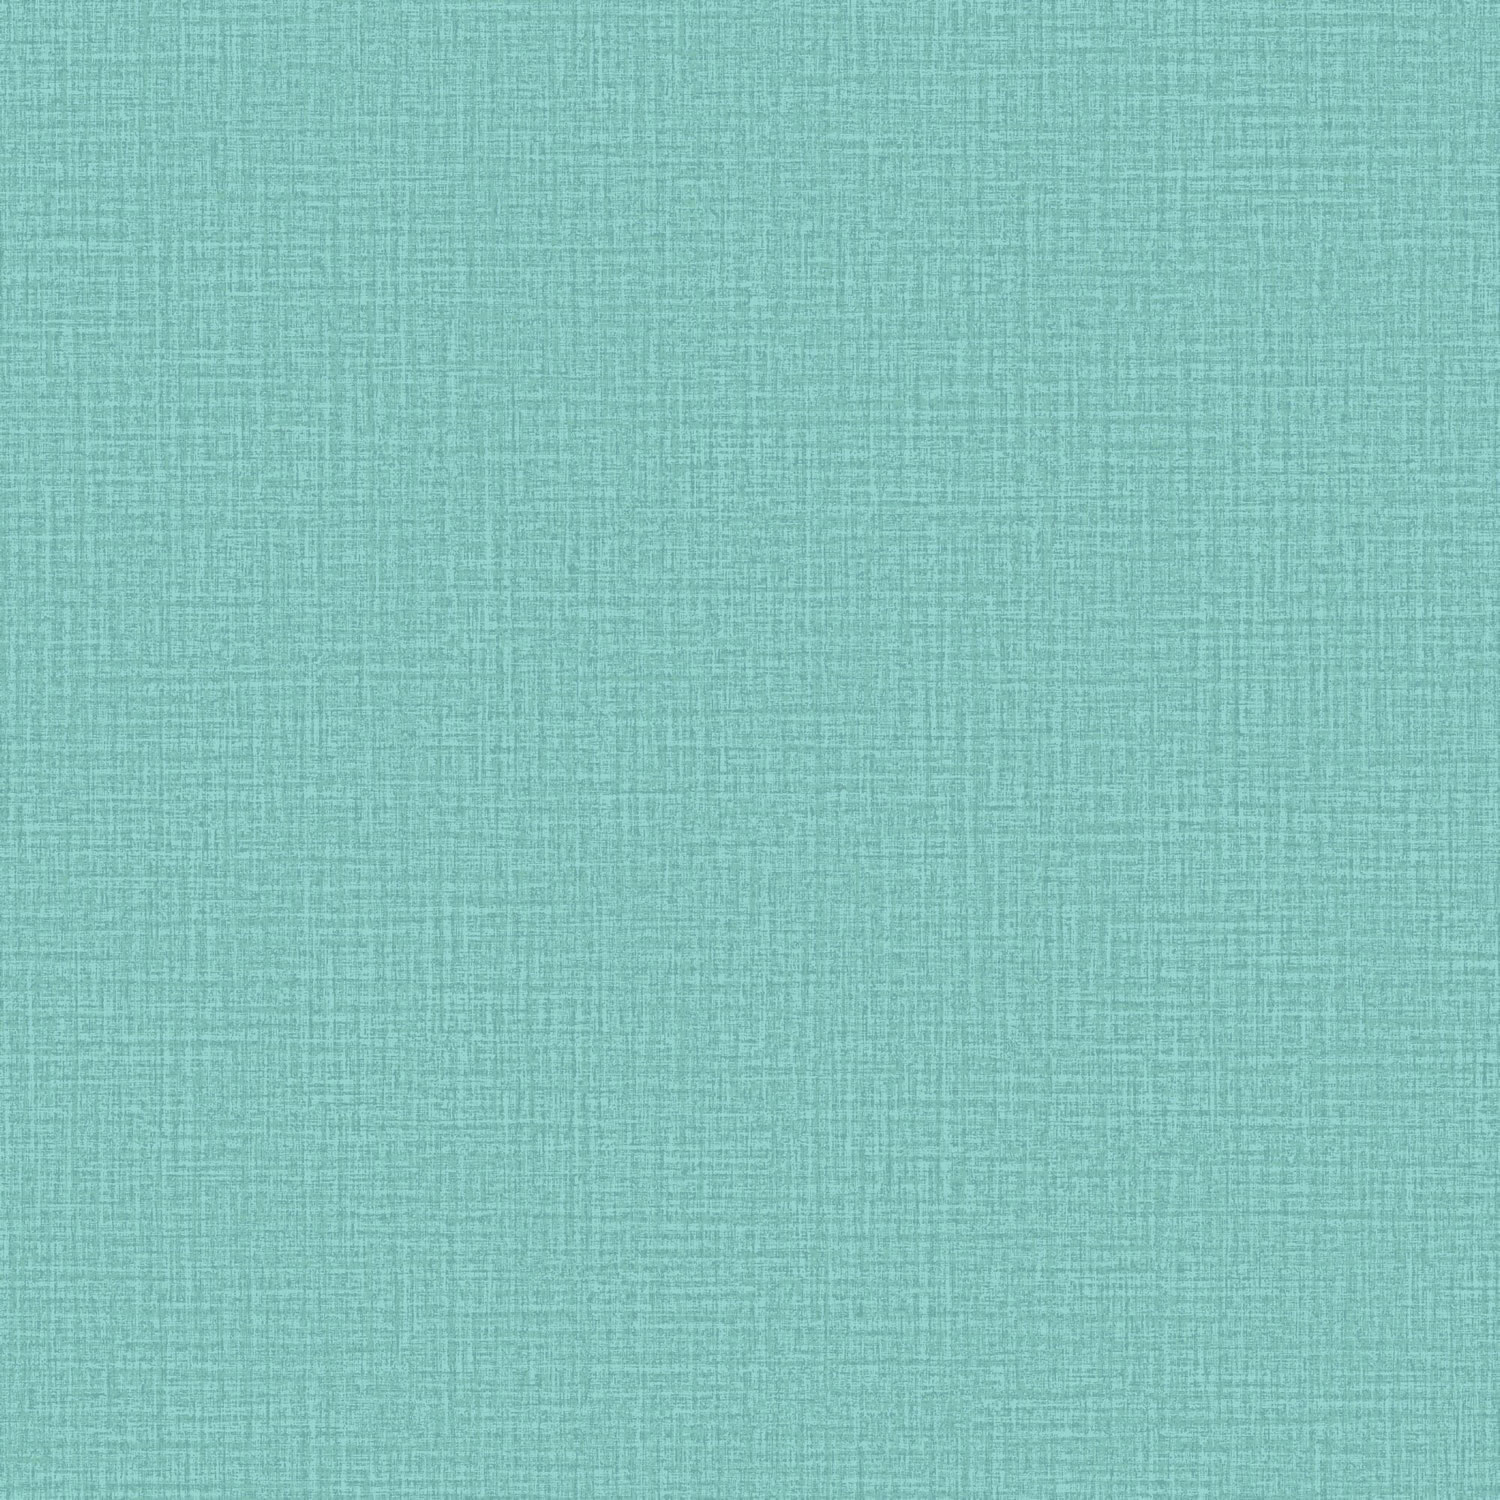 Boho Chic Wallpaper - WallpaperSafari Plain Teal Background